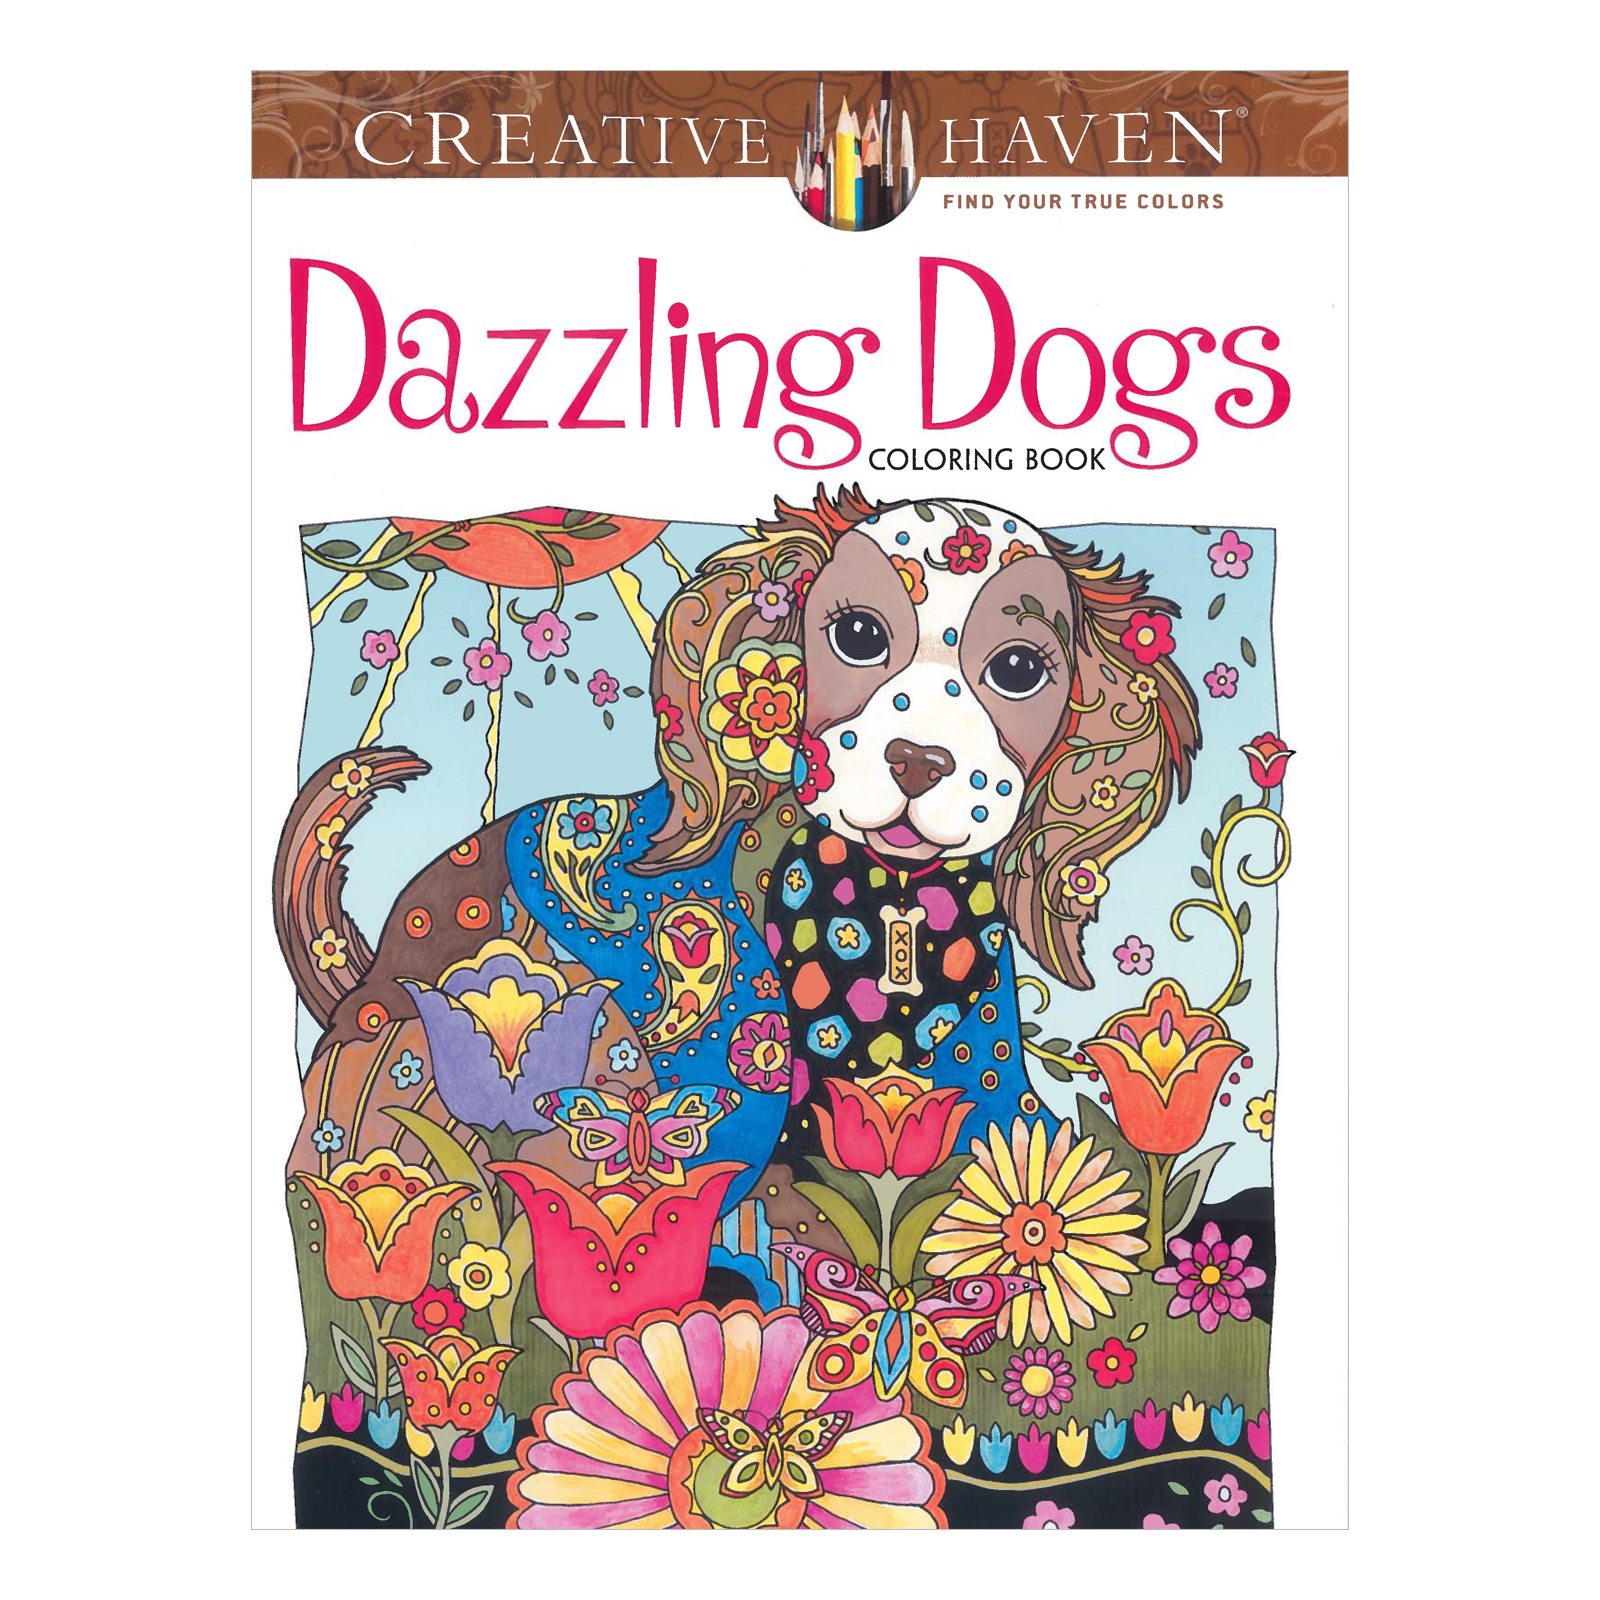 Creative Haven Dazzling Dogs Coloring Book Next